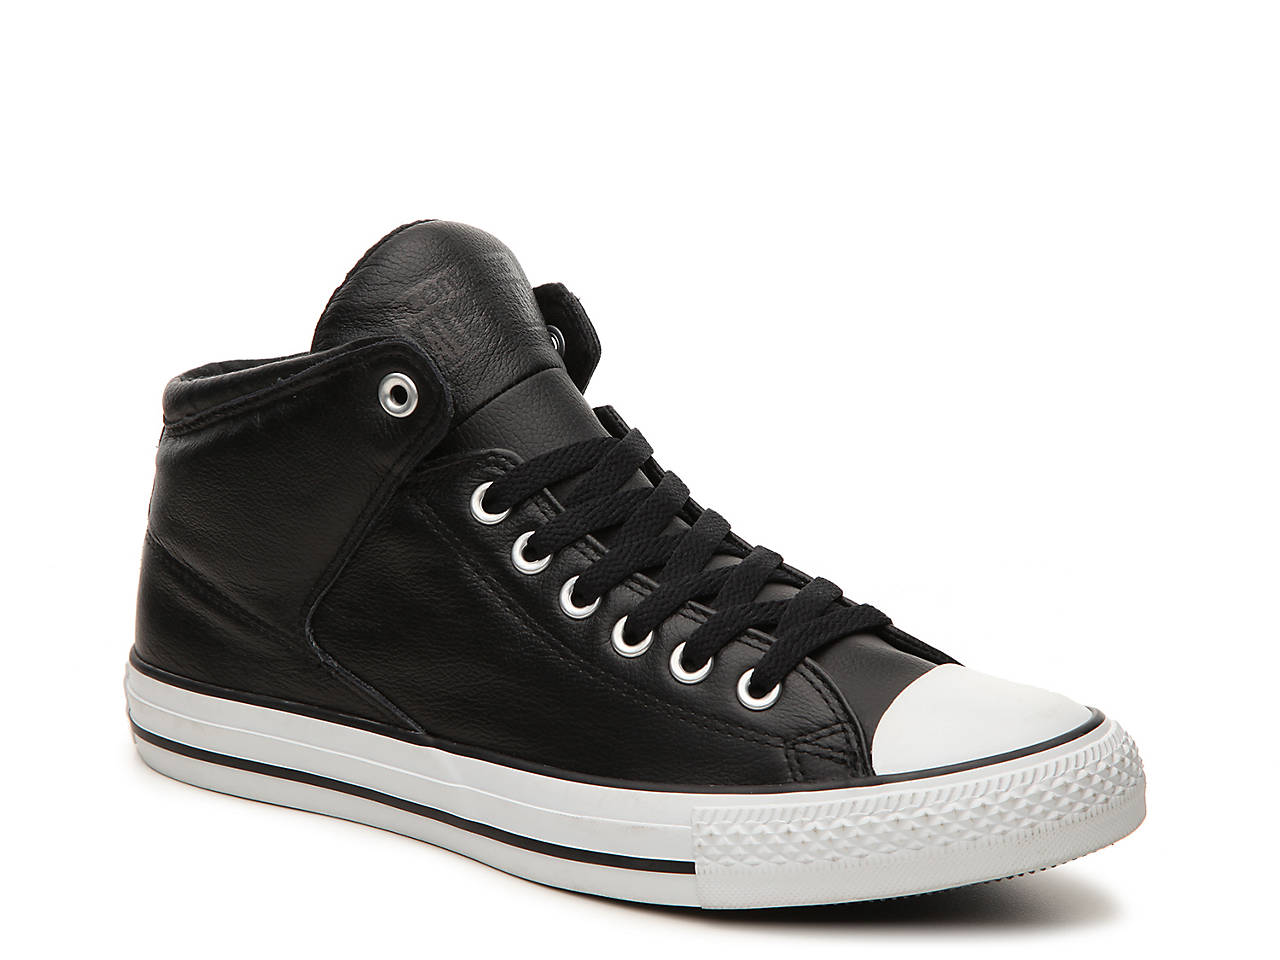 7dc6117a4d7c Converse Chuck Taylor All Star Street Leather High-Top Sneaker ...